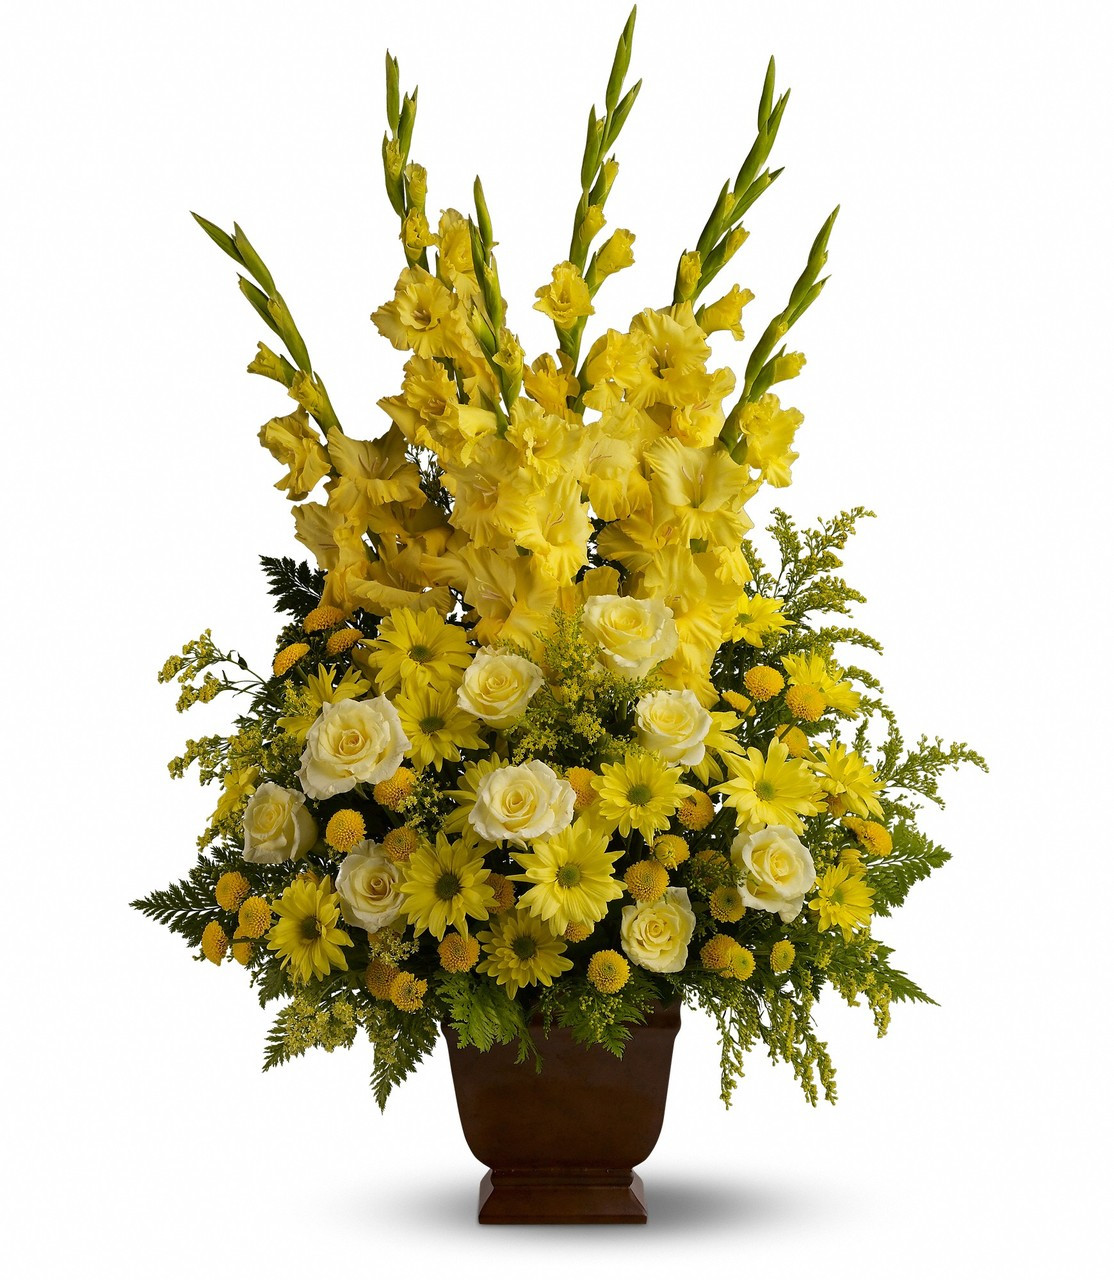 All Yellow Sympathy Flowers In Urn For Floral Delivery In Houston Tx